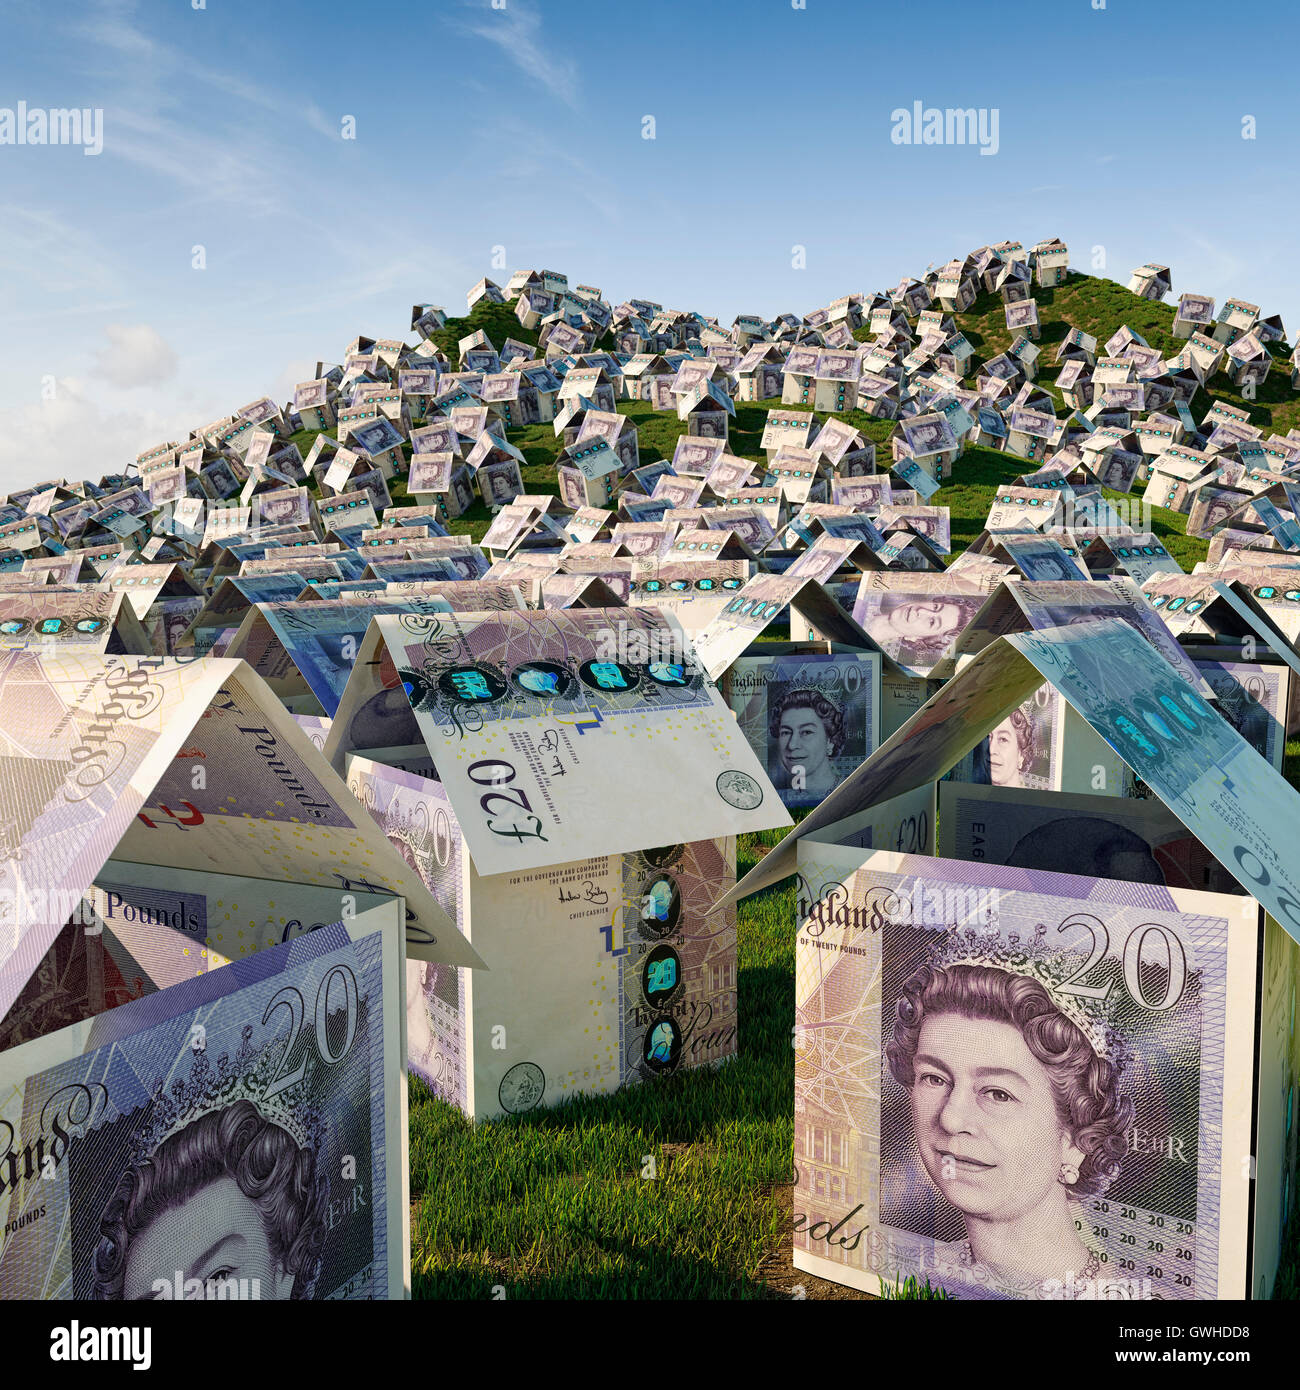 UK housing crisis - House building concept, house prices and housing estate development concept - Stock Image